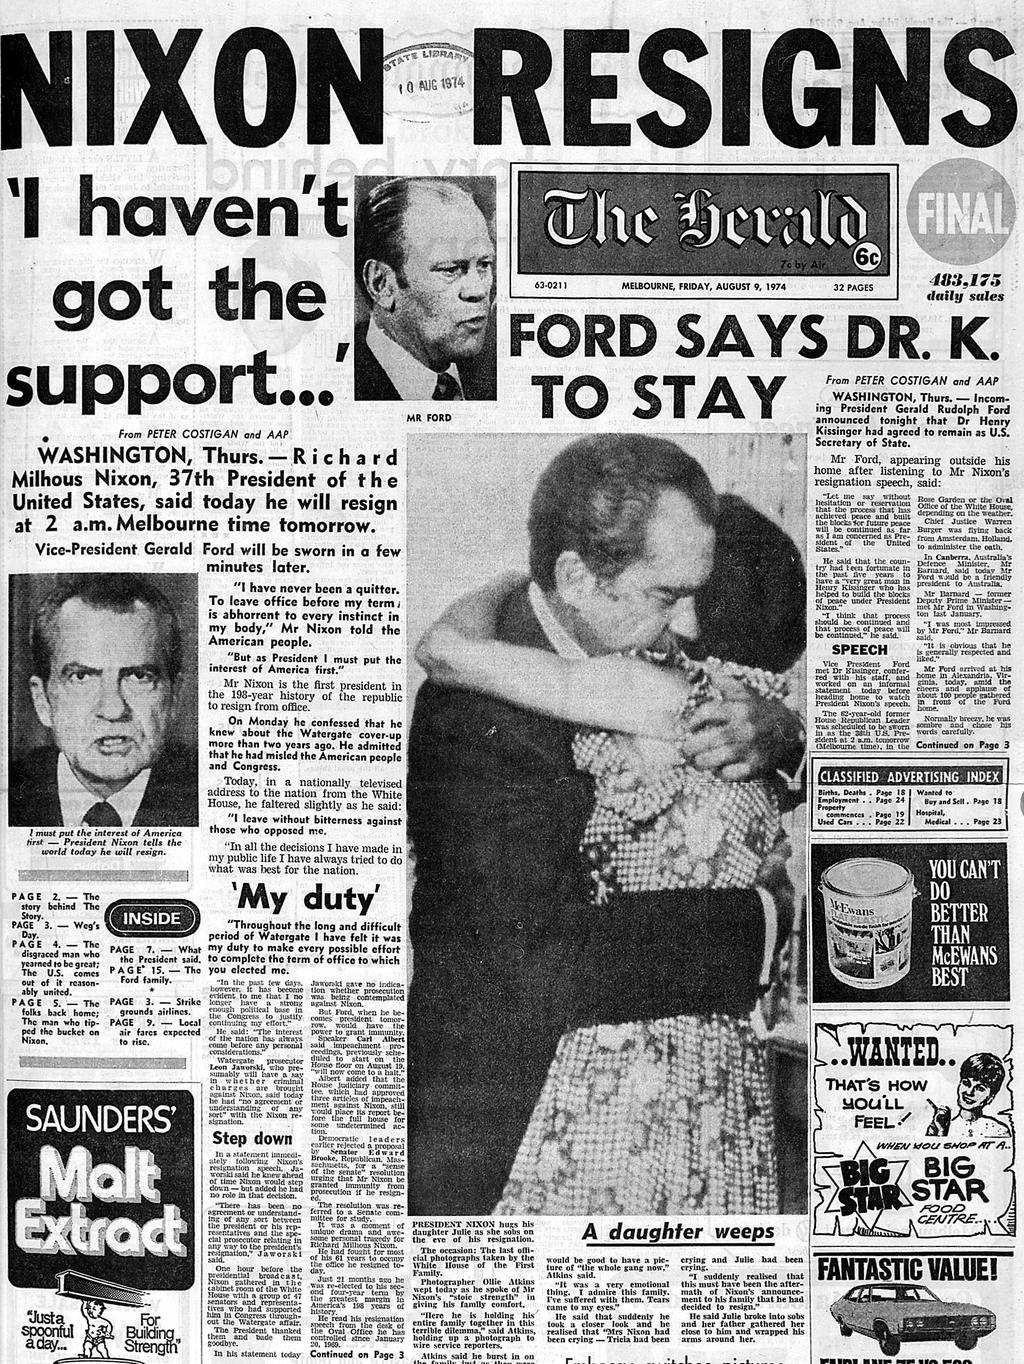 How melbourne s the herald newspaper reported the downfall of richard nixon after the watergate scandal in